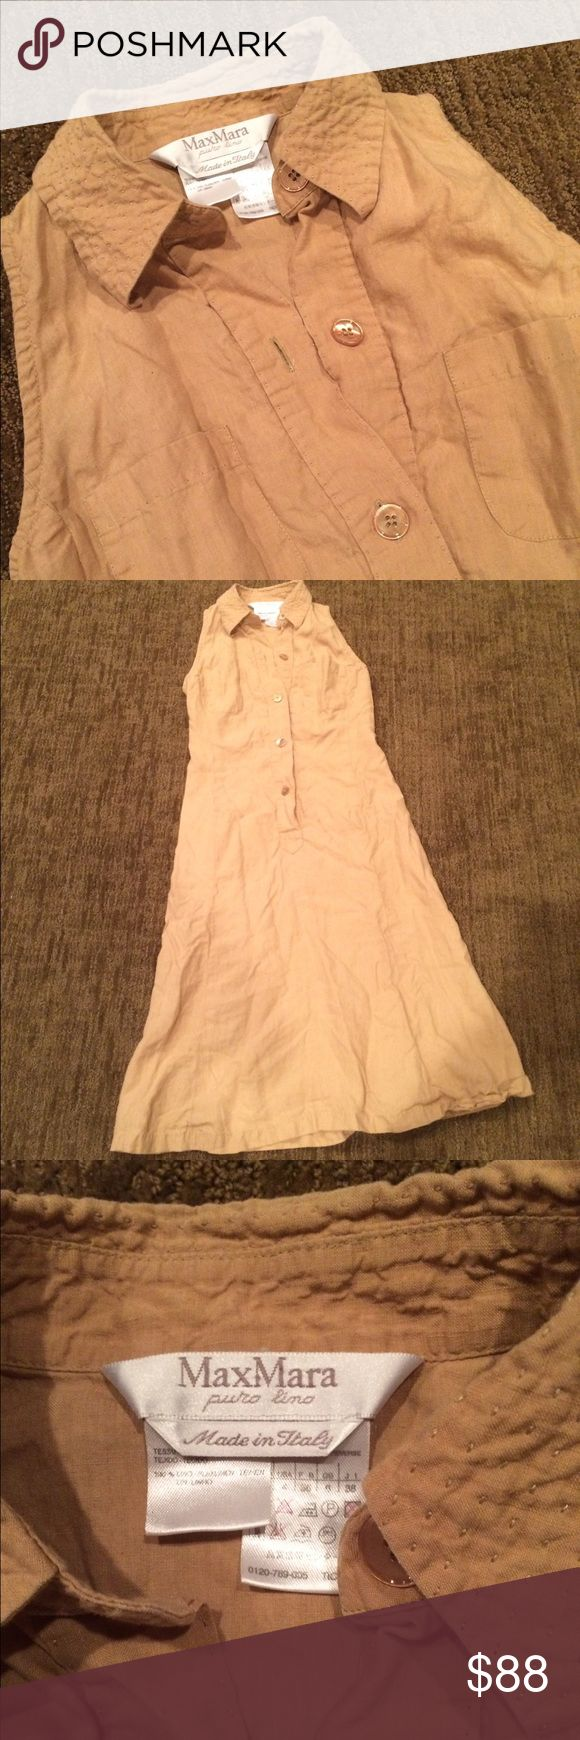 MaxMara designer tan linen safari dress Classic chic tan button down linen safari dress from Max Mara. Purchased in Max Mara store in Sydney a while ago for over $400 but only worn a few times. Too small for me now (would best fit XS and an A or B cup). Collar, pockets, looks great with platform sandals or white pumps. Has been in storage and needs a steam iron but otherwise in perfect condition. Made in Italy. Club Monaco for exposure only. Club Monaco Dresses Midi